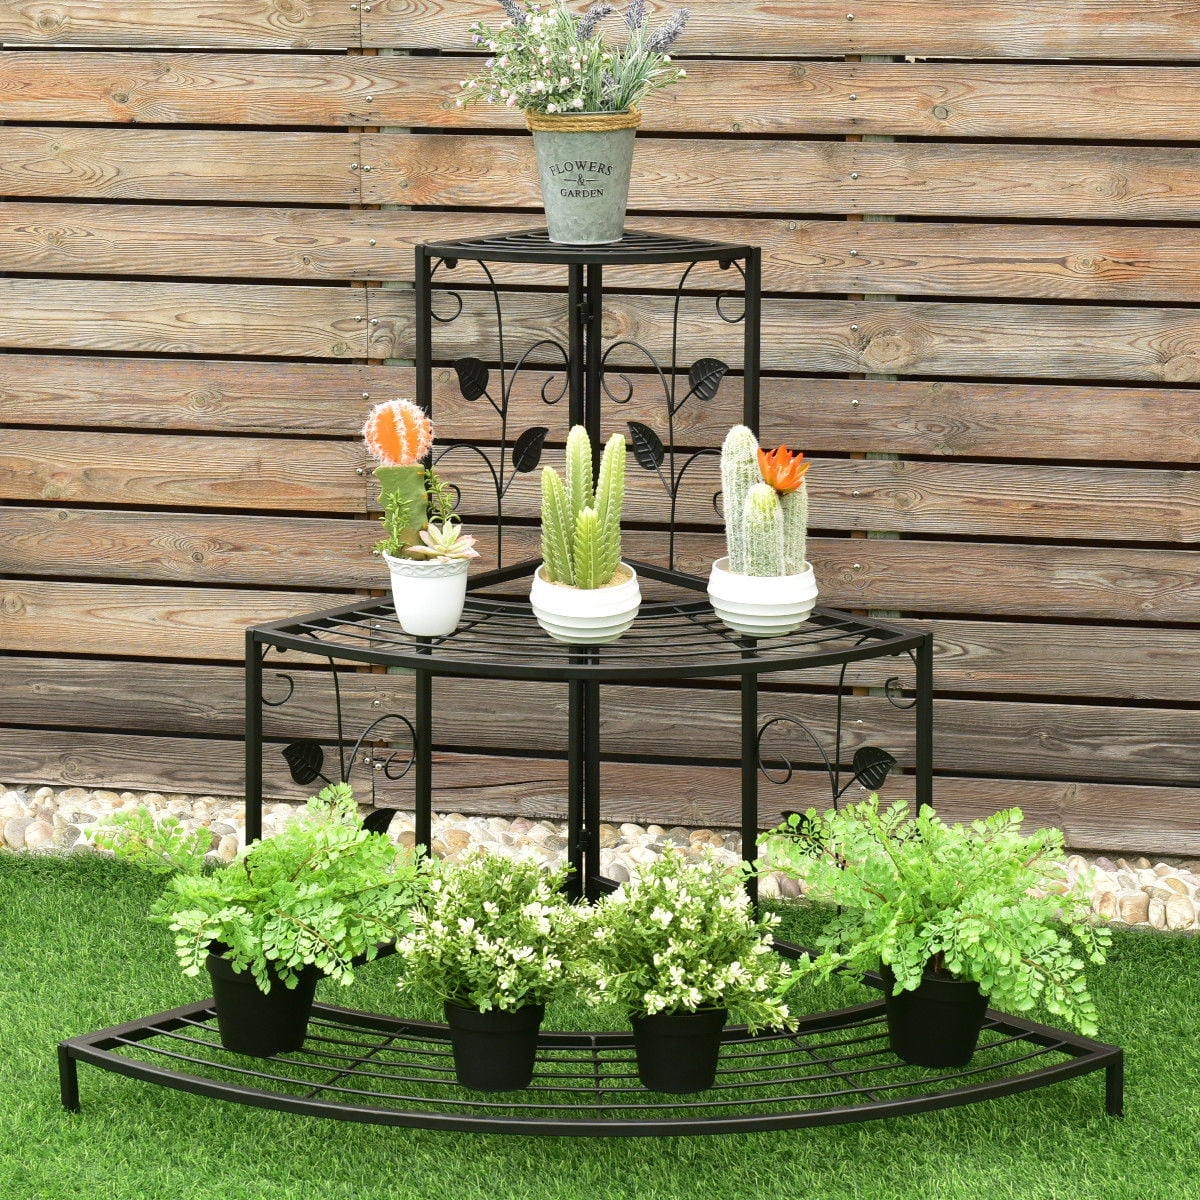 Costway 3 Tier Floral Corner Plant Stand Metal Flower Pot Rack Stair Display Ladder by Costway